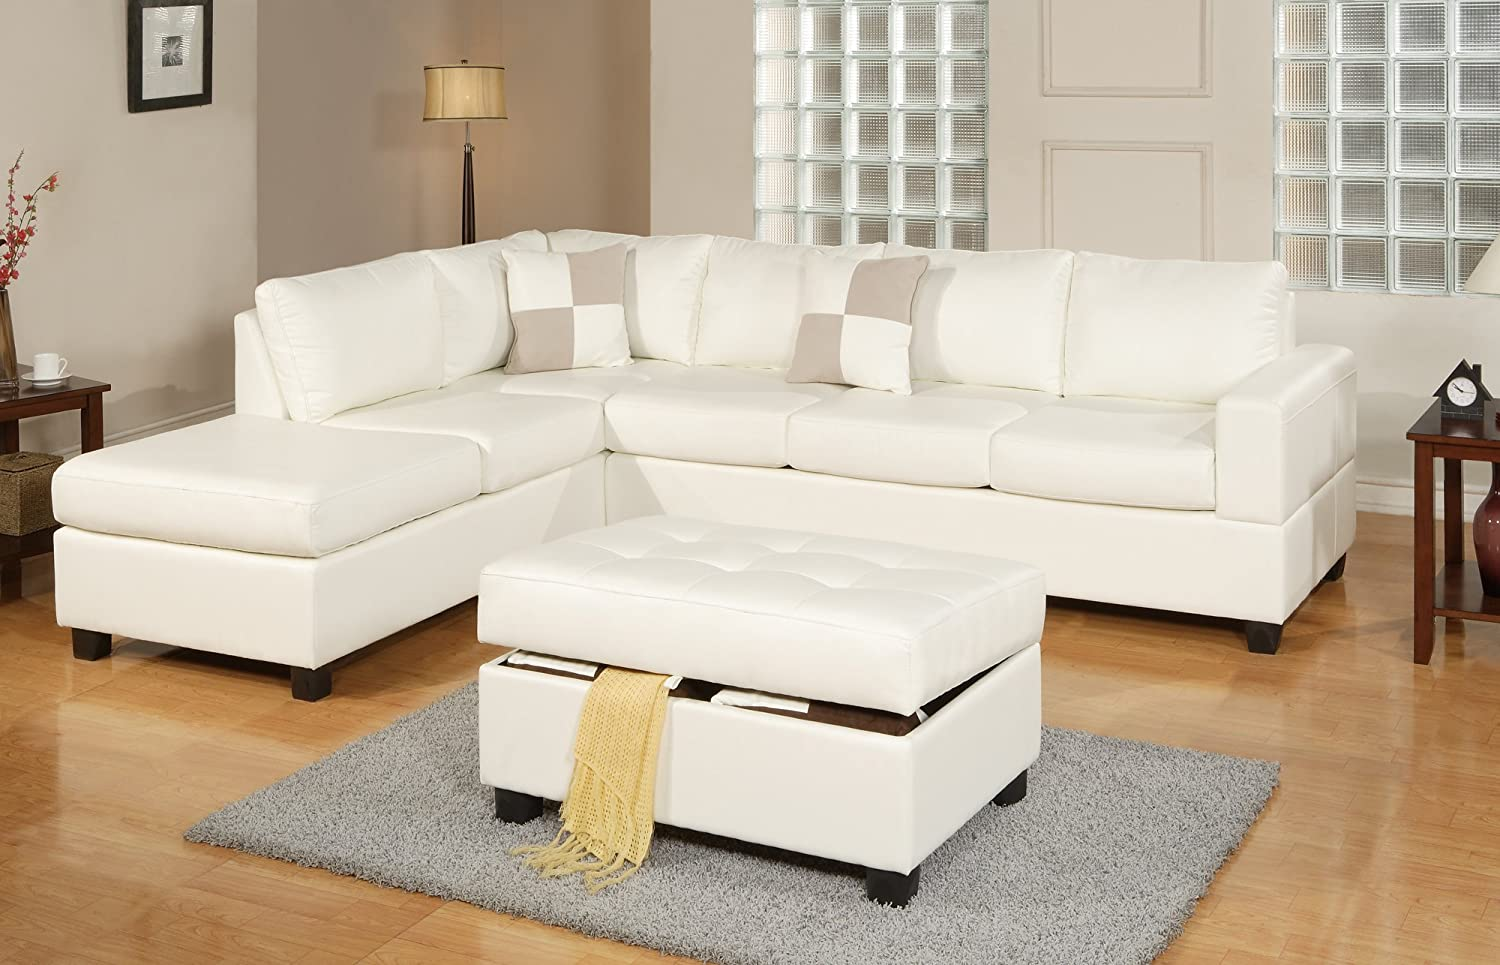 tuberculosisforum leather furniture atlanta couch of sofas white luxury sofa contemporary ga sectional com awesome